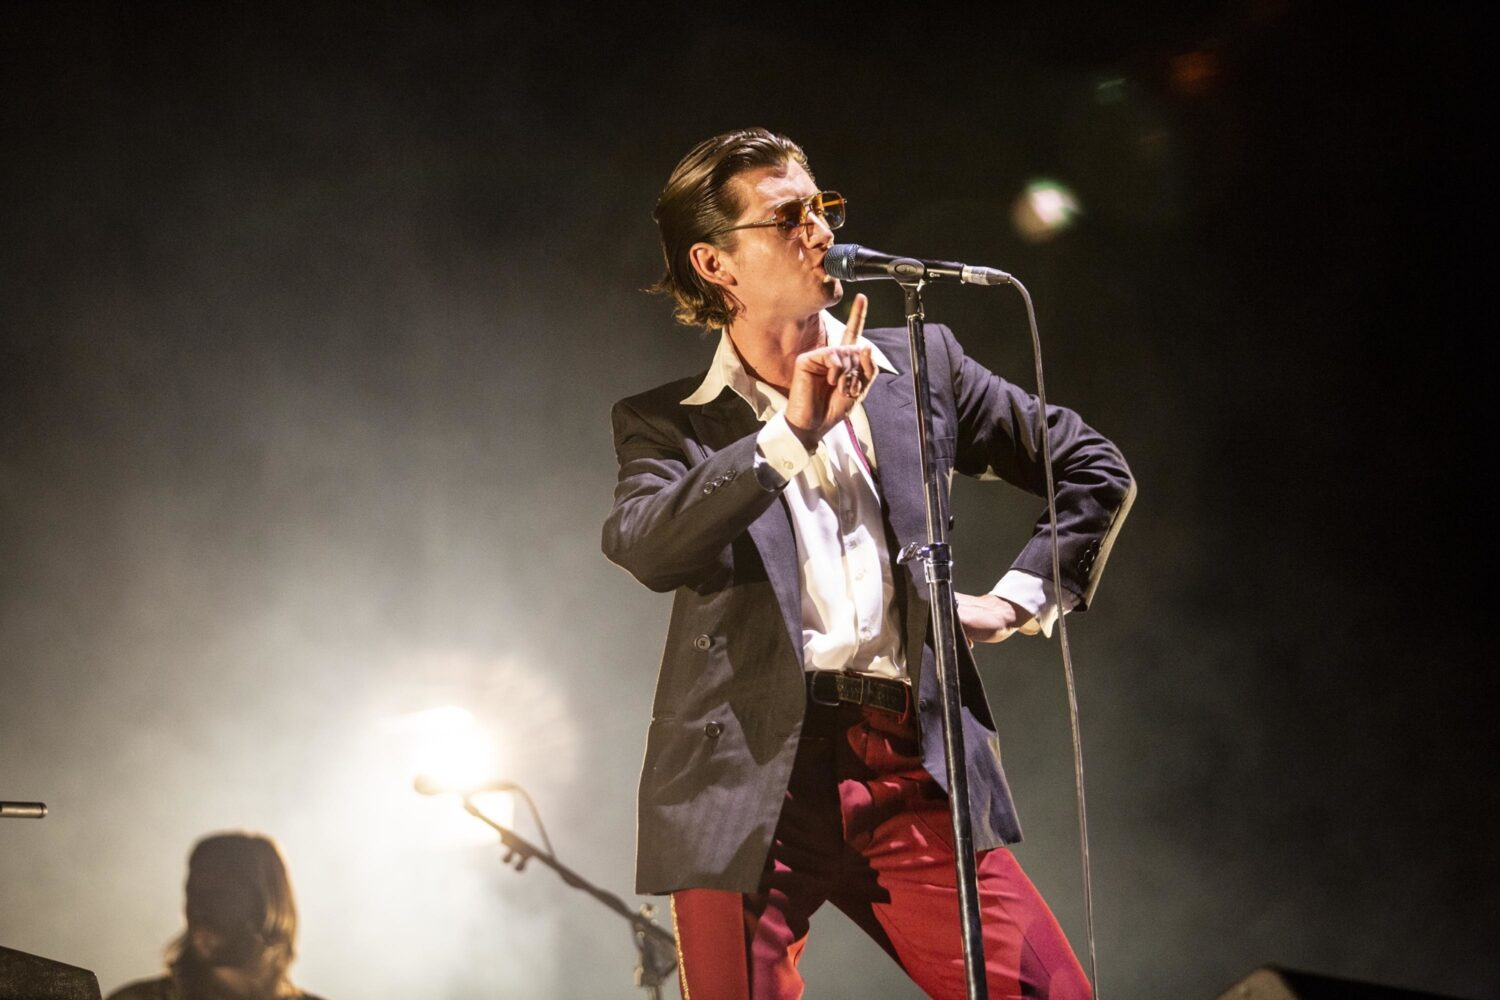 Arctic Monkeys bring 'Tranquility Base Hotel & Casino' to Mad Cool for a celebratory Day Two headline set